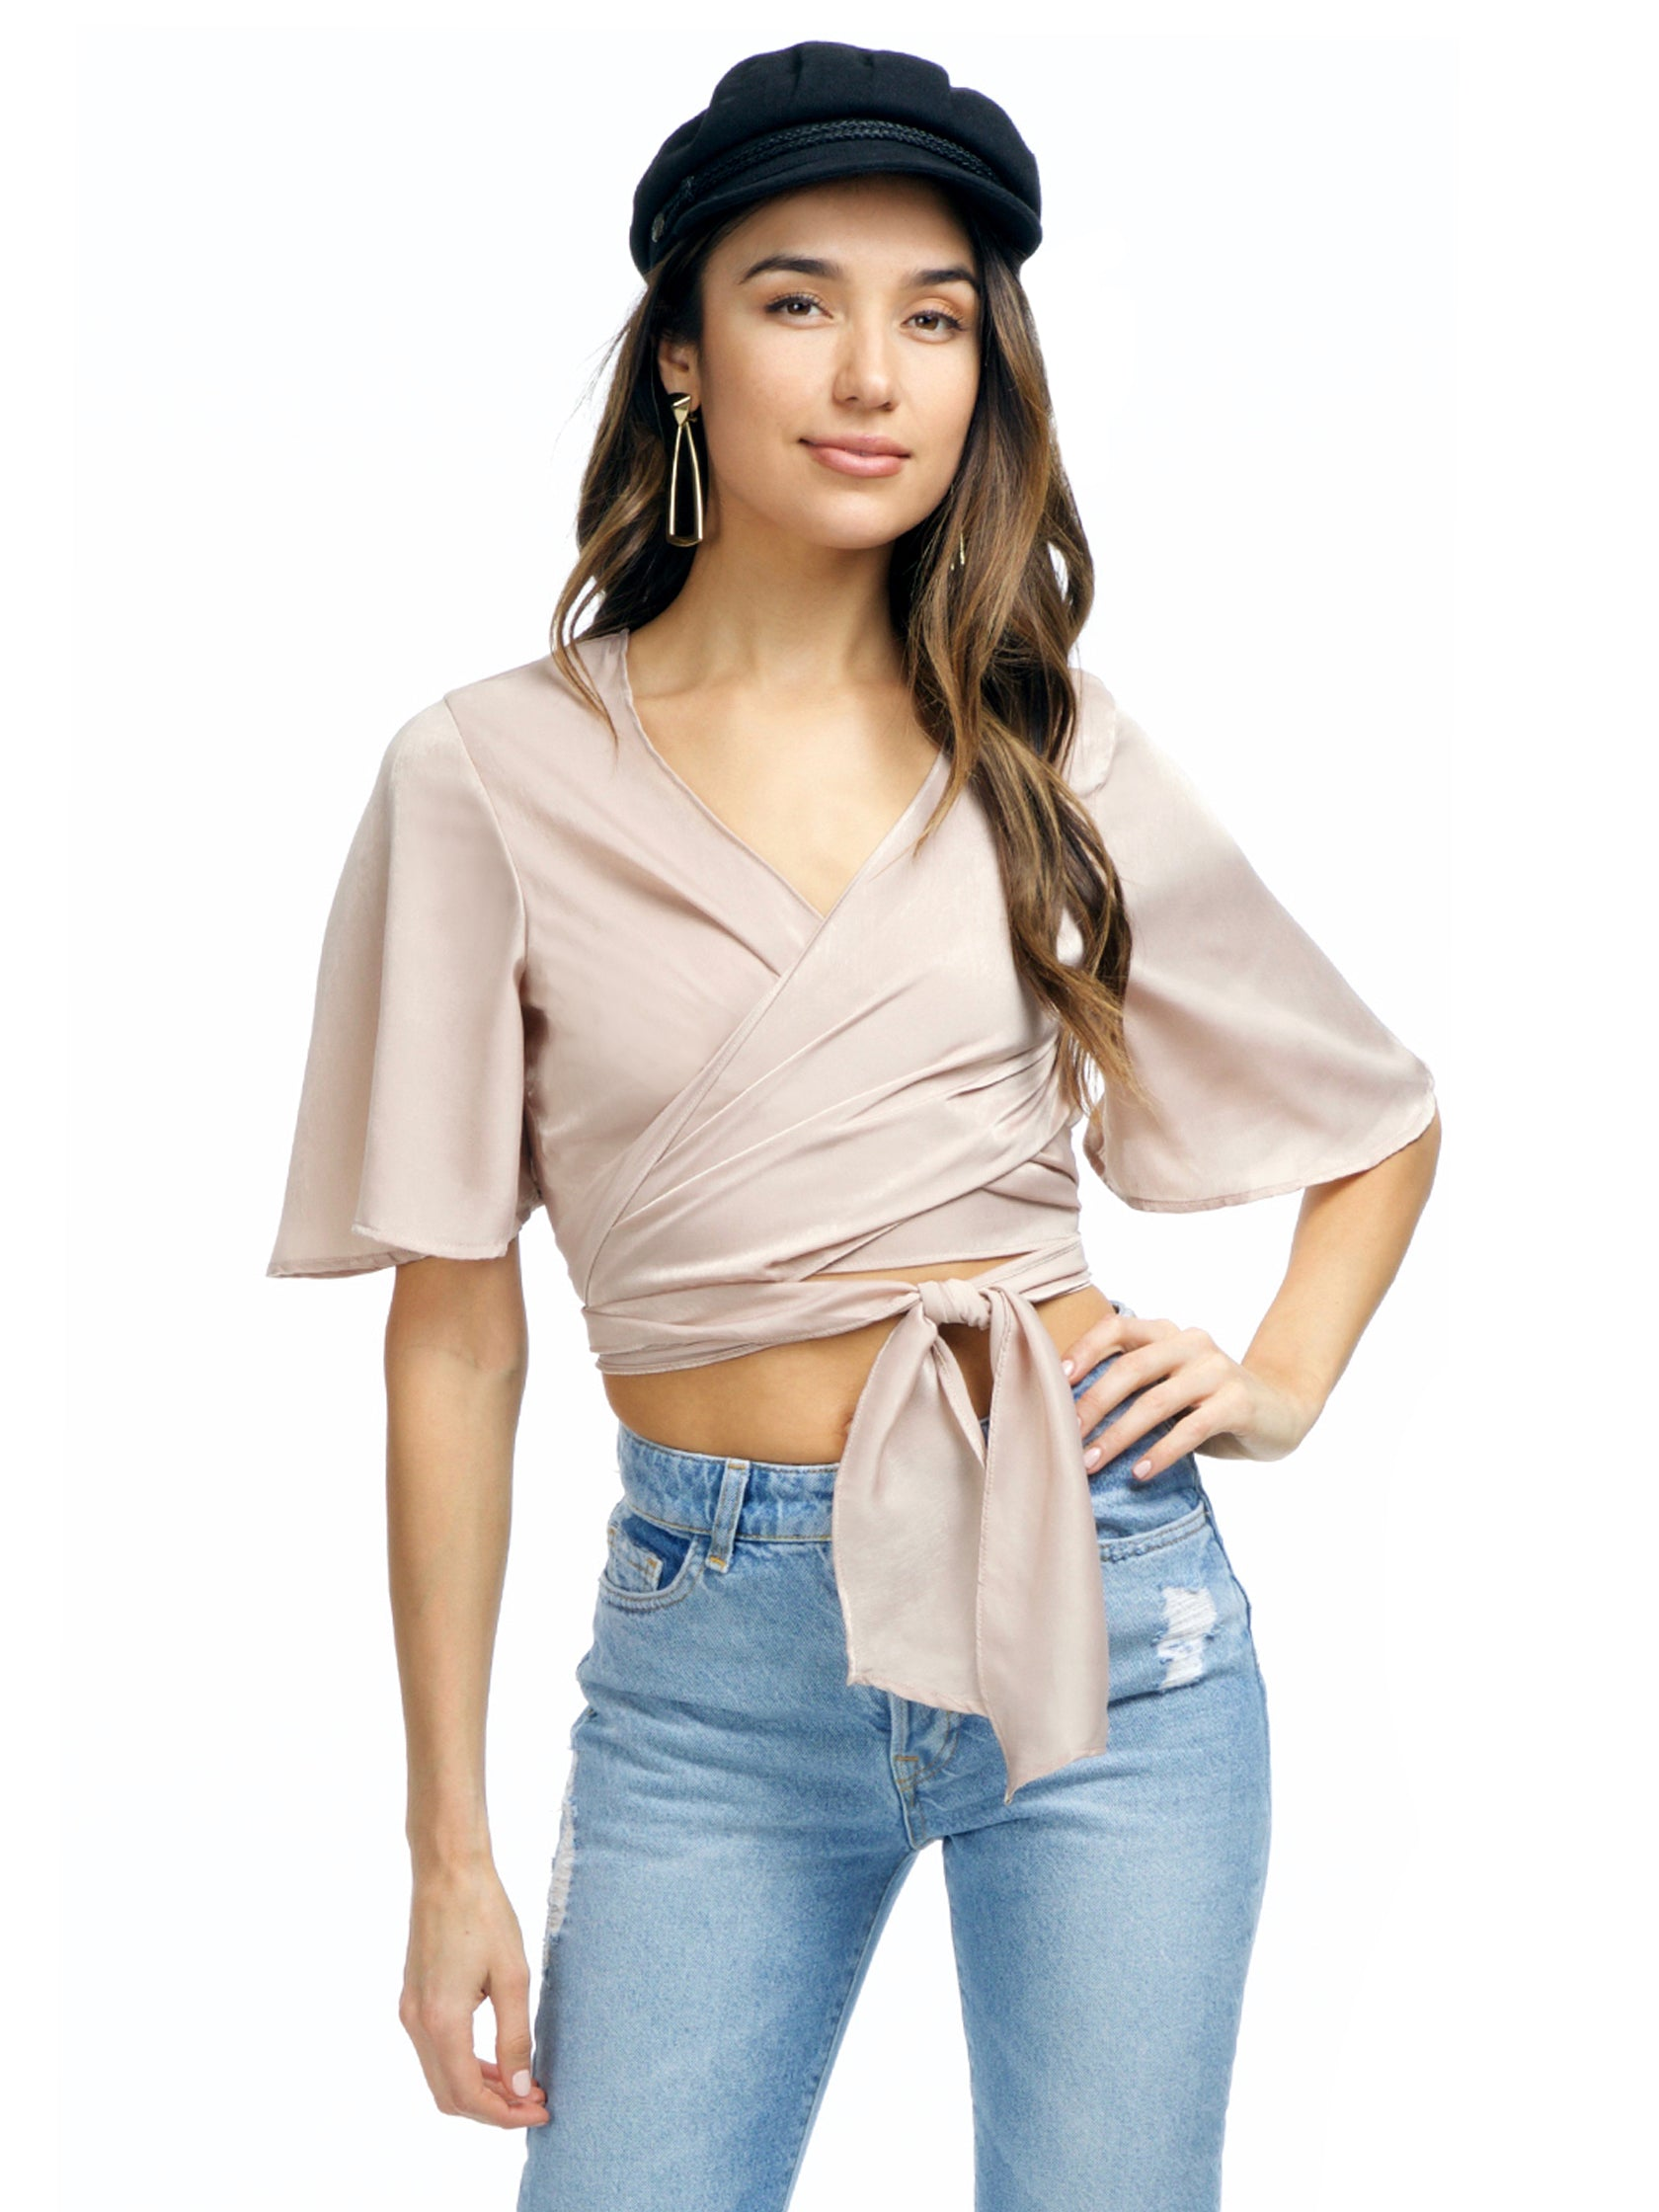 Girl wearing a top rental from FashionPass called Everleigh Crop Top